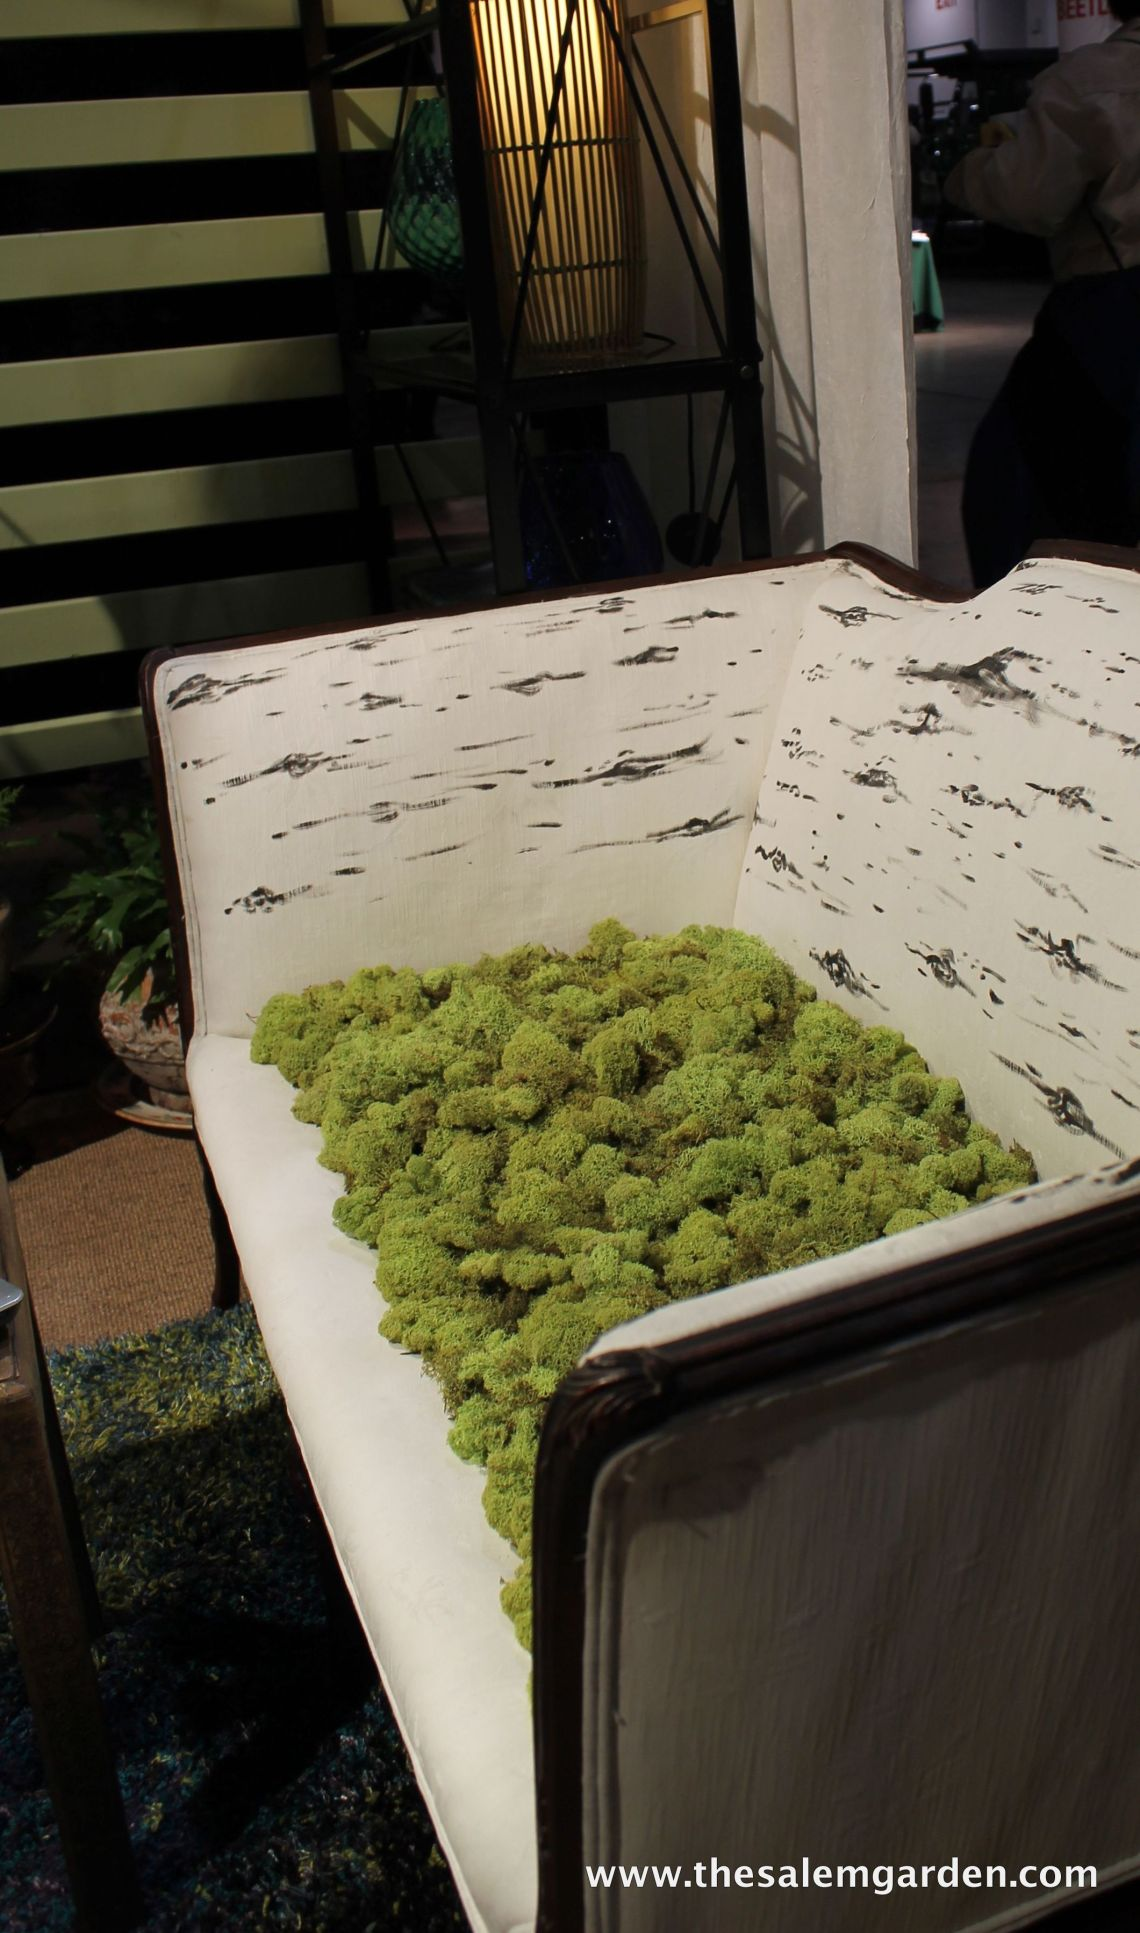 I love this settee! Who wouldn't want to sit upon a bed of moss?